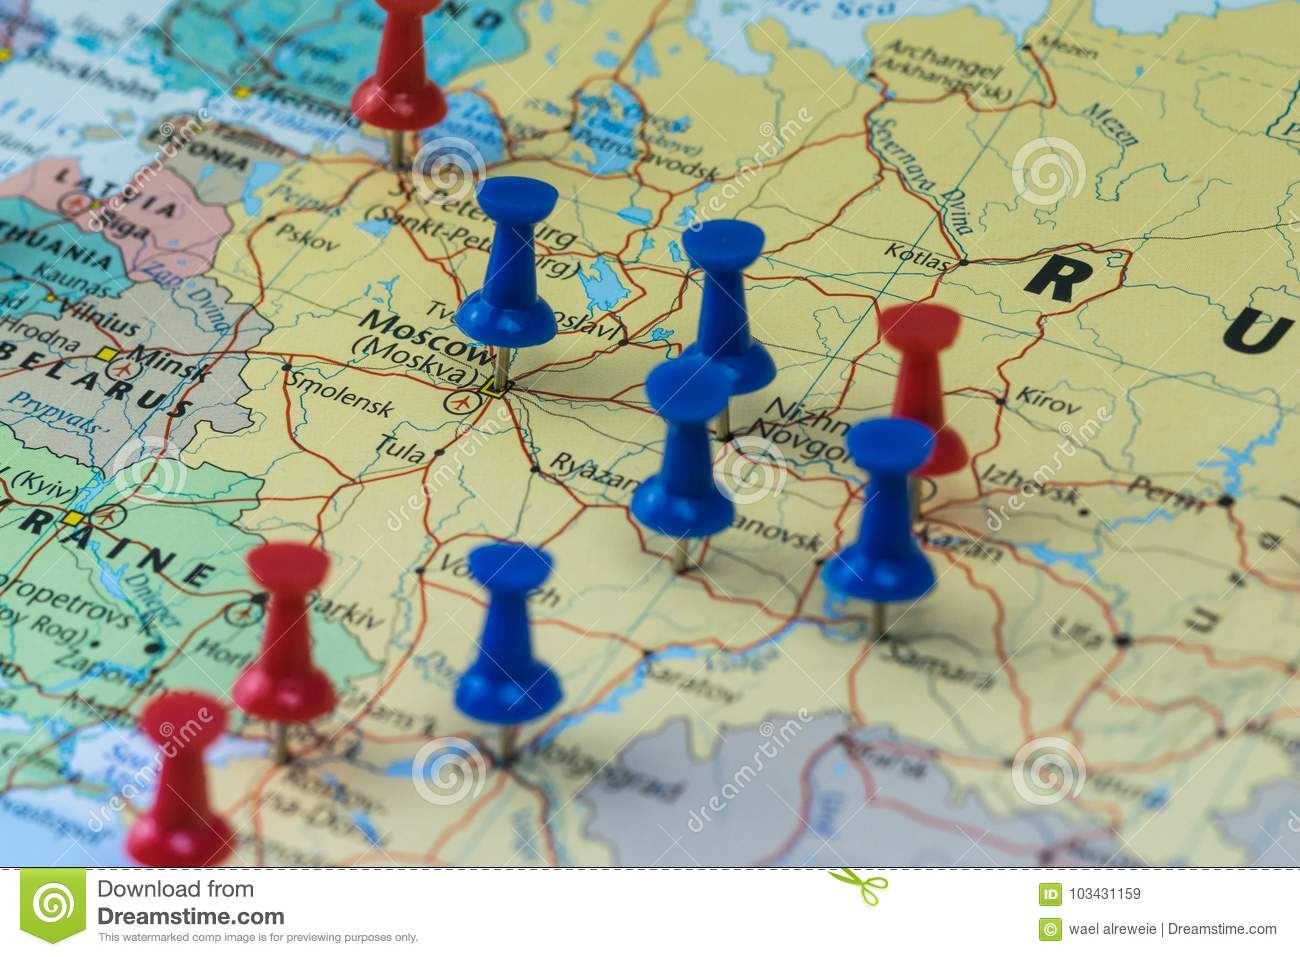 Moscow Pinned with other world cup venue cities in a closeup map for football world cup 2018 in Russia